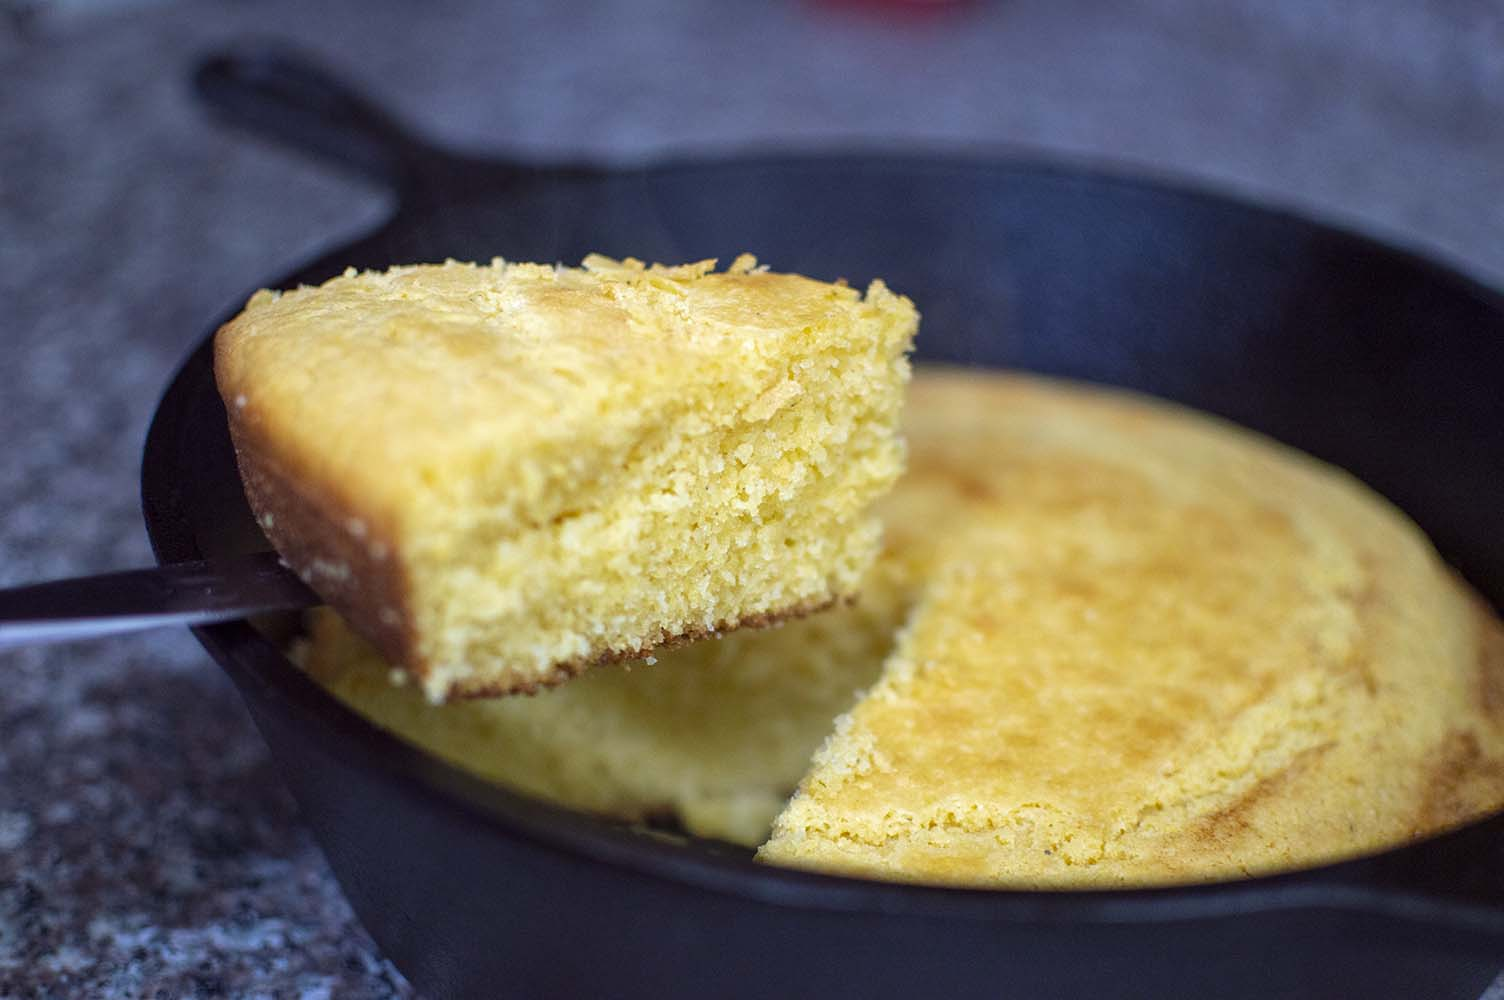 Cast Iron Cornbread baked and ready to eat